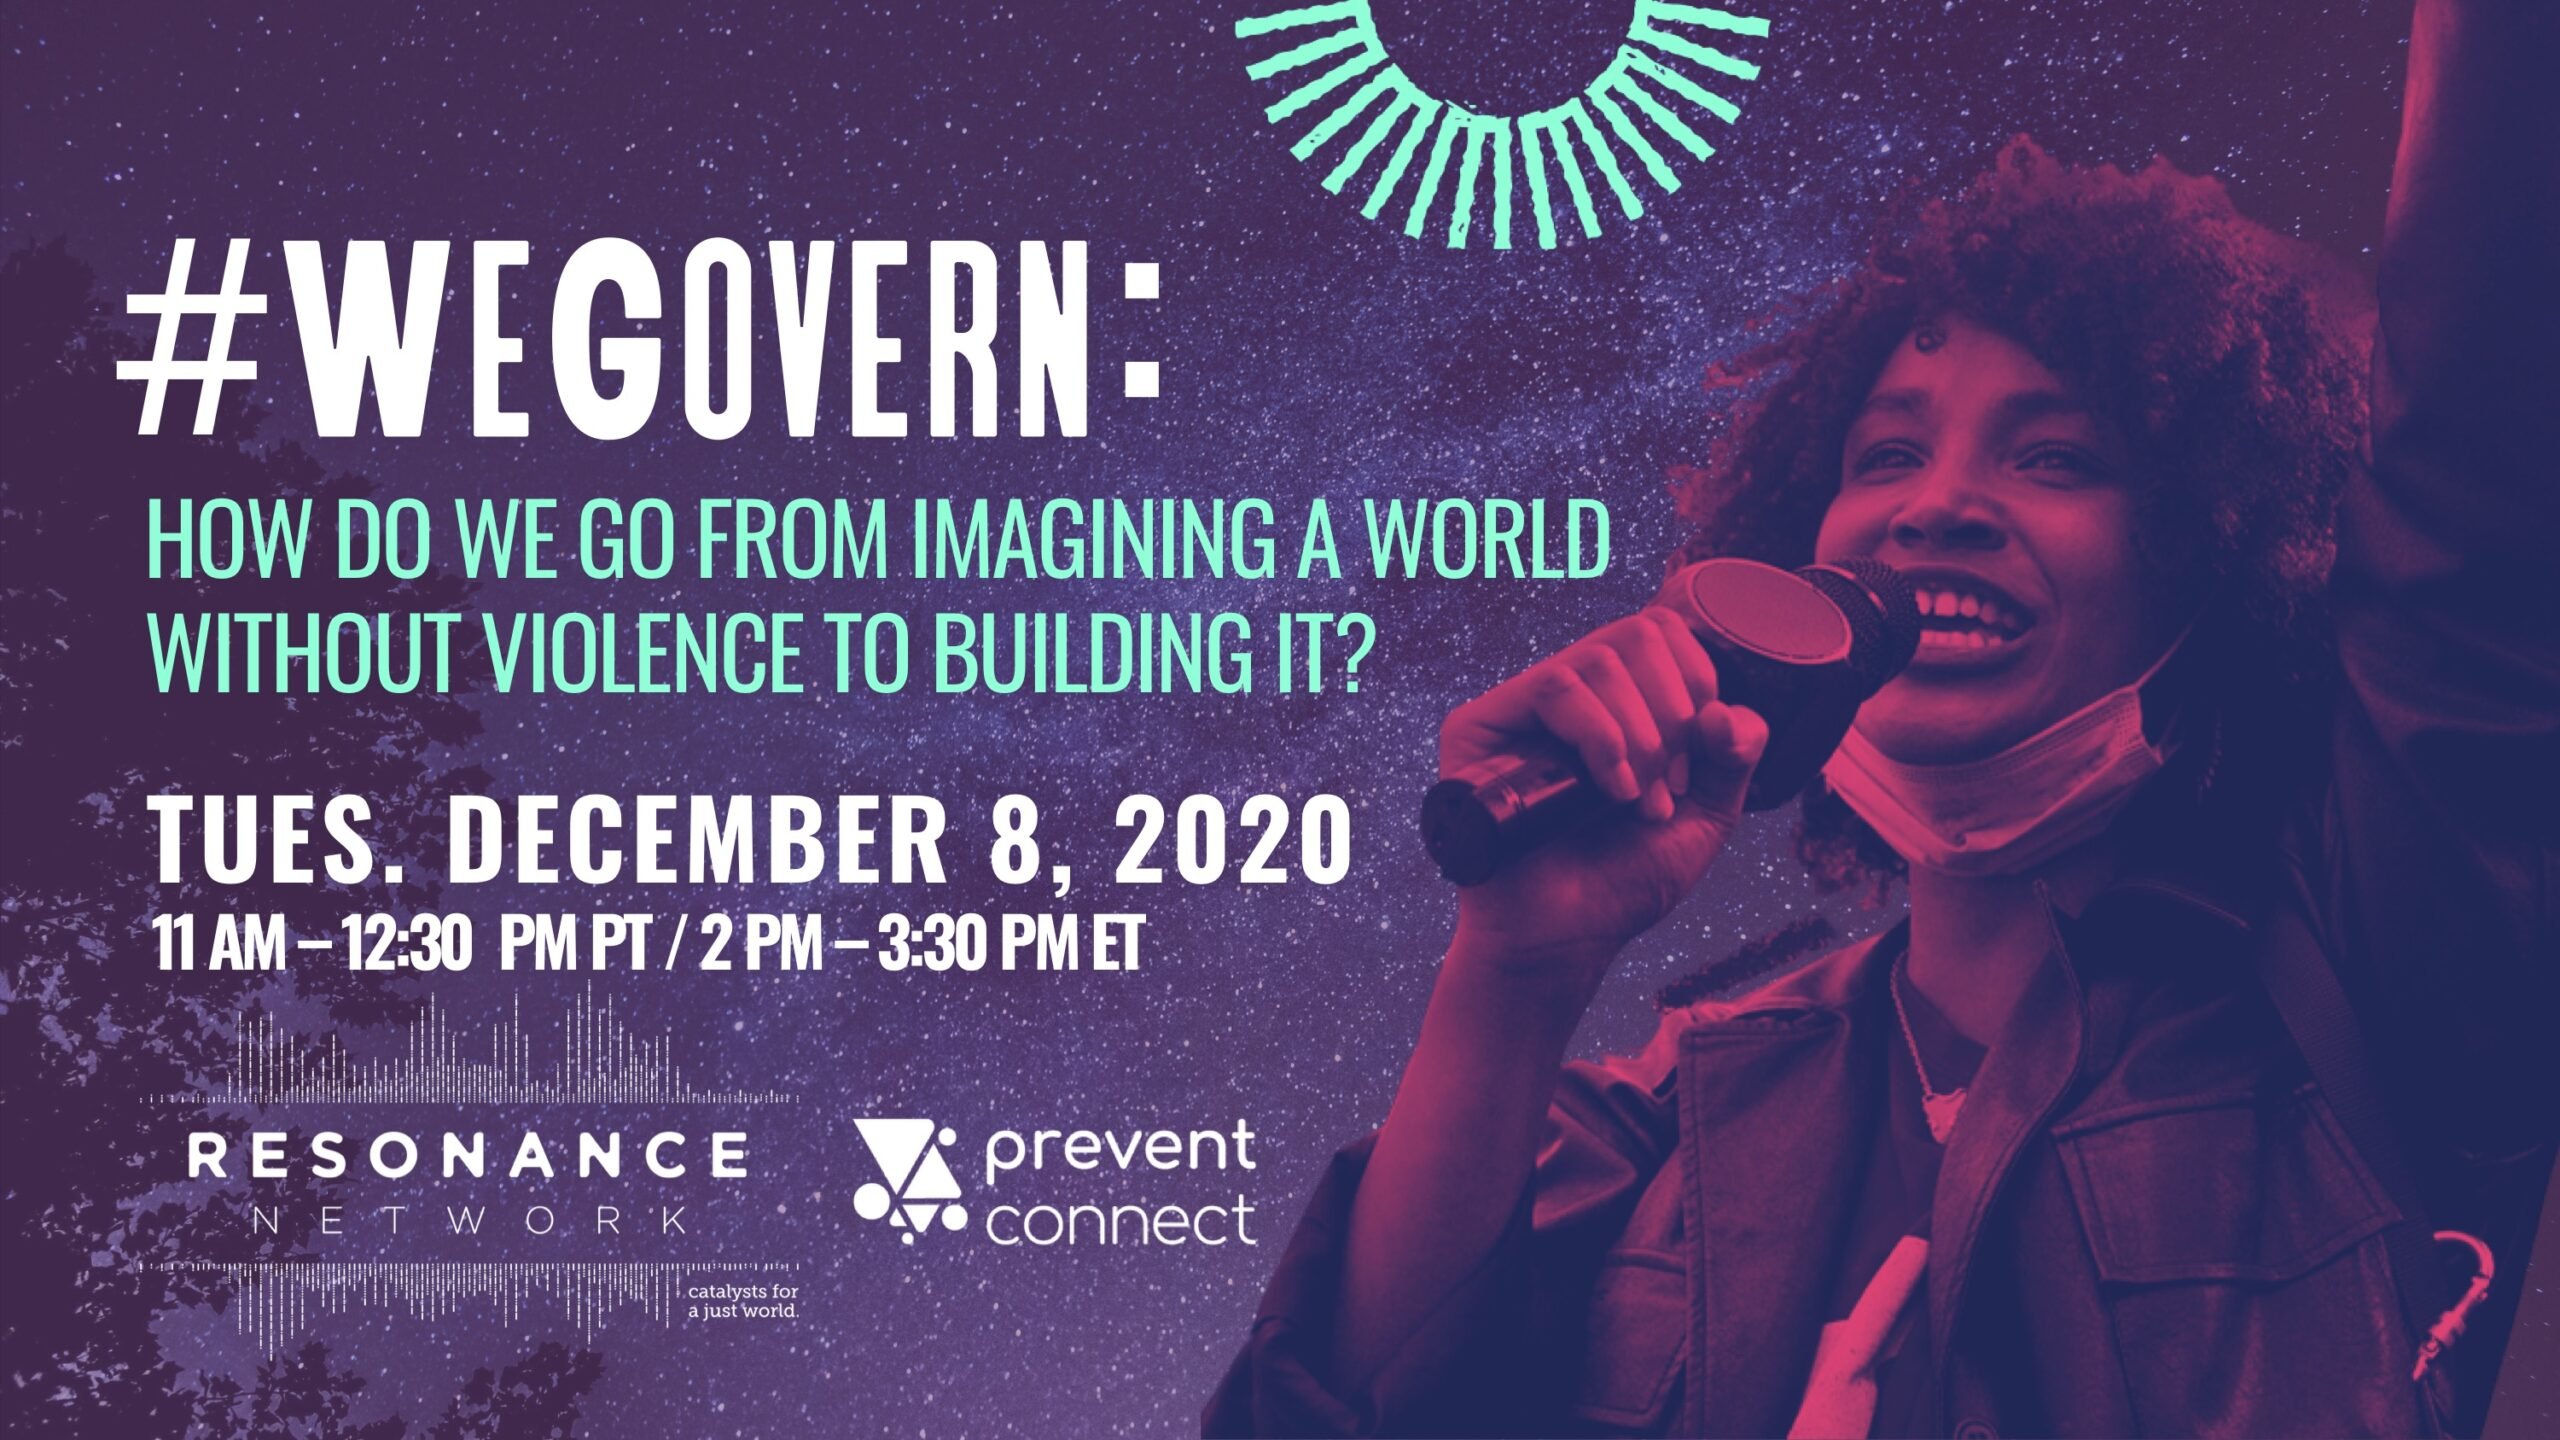 #WeGovern: How do we go from imagining a world without violence to building it? Tues. December 8, 2020 11 AM-12:30 PM PT/2 PM-3:30 PM ET